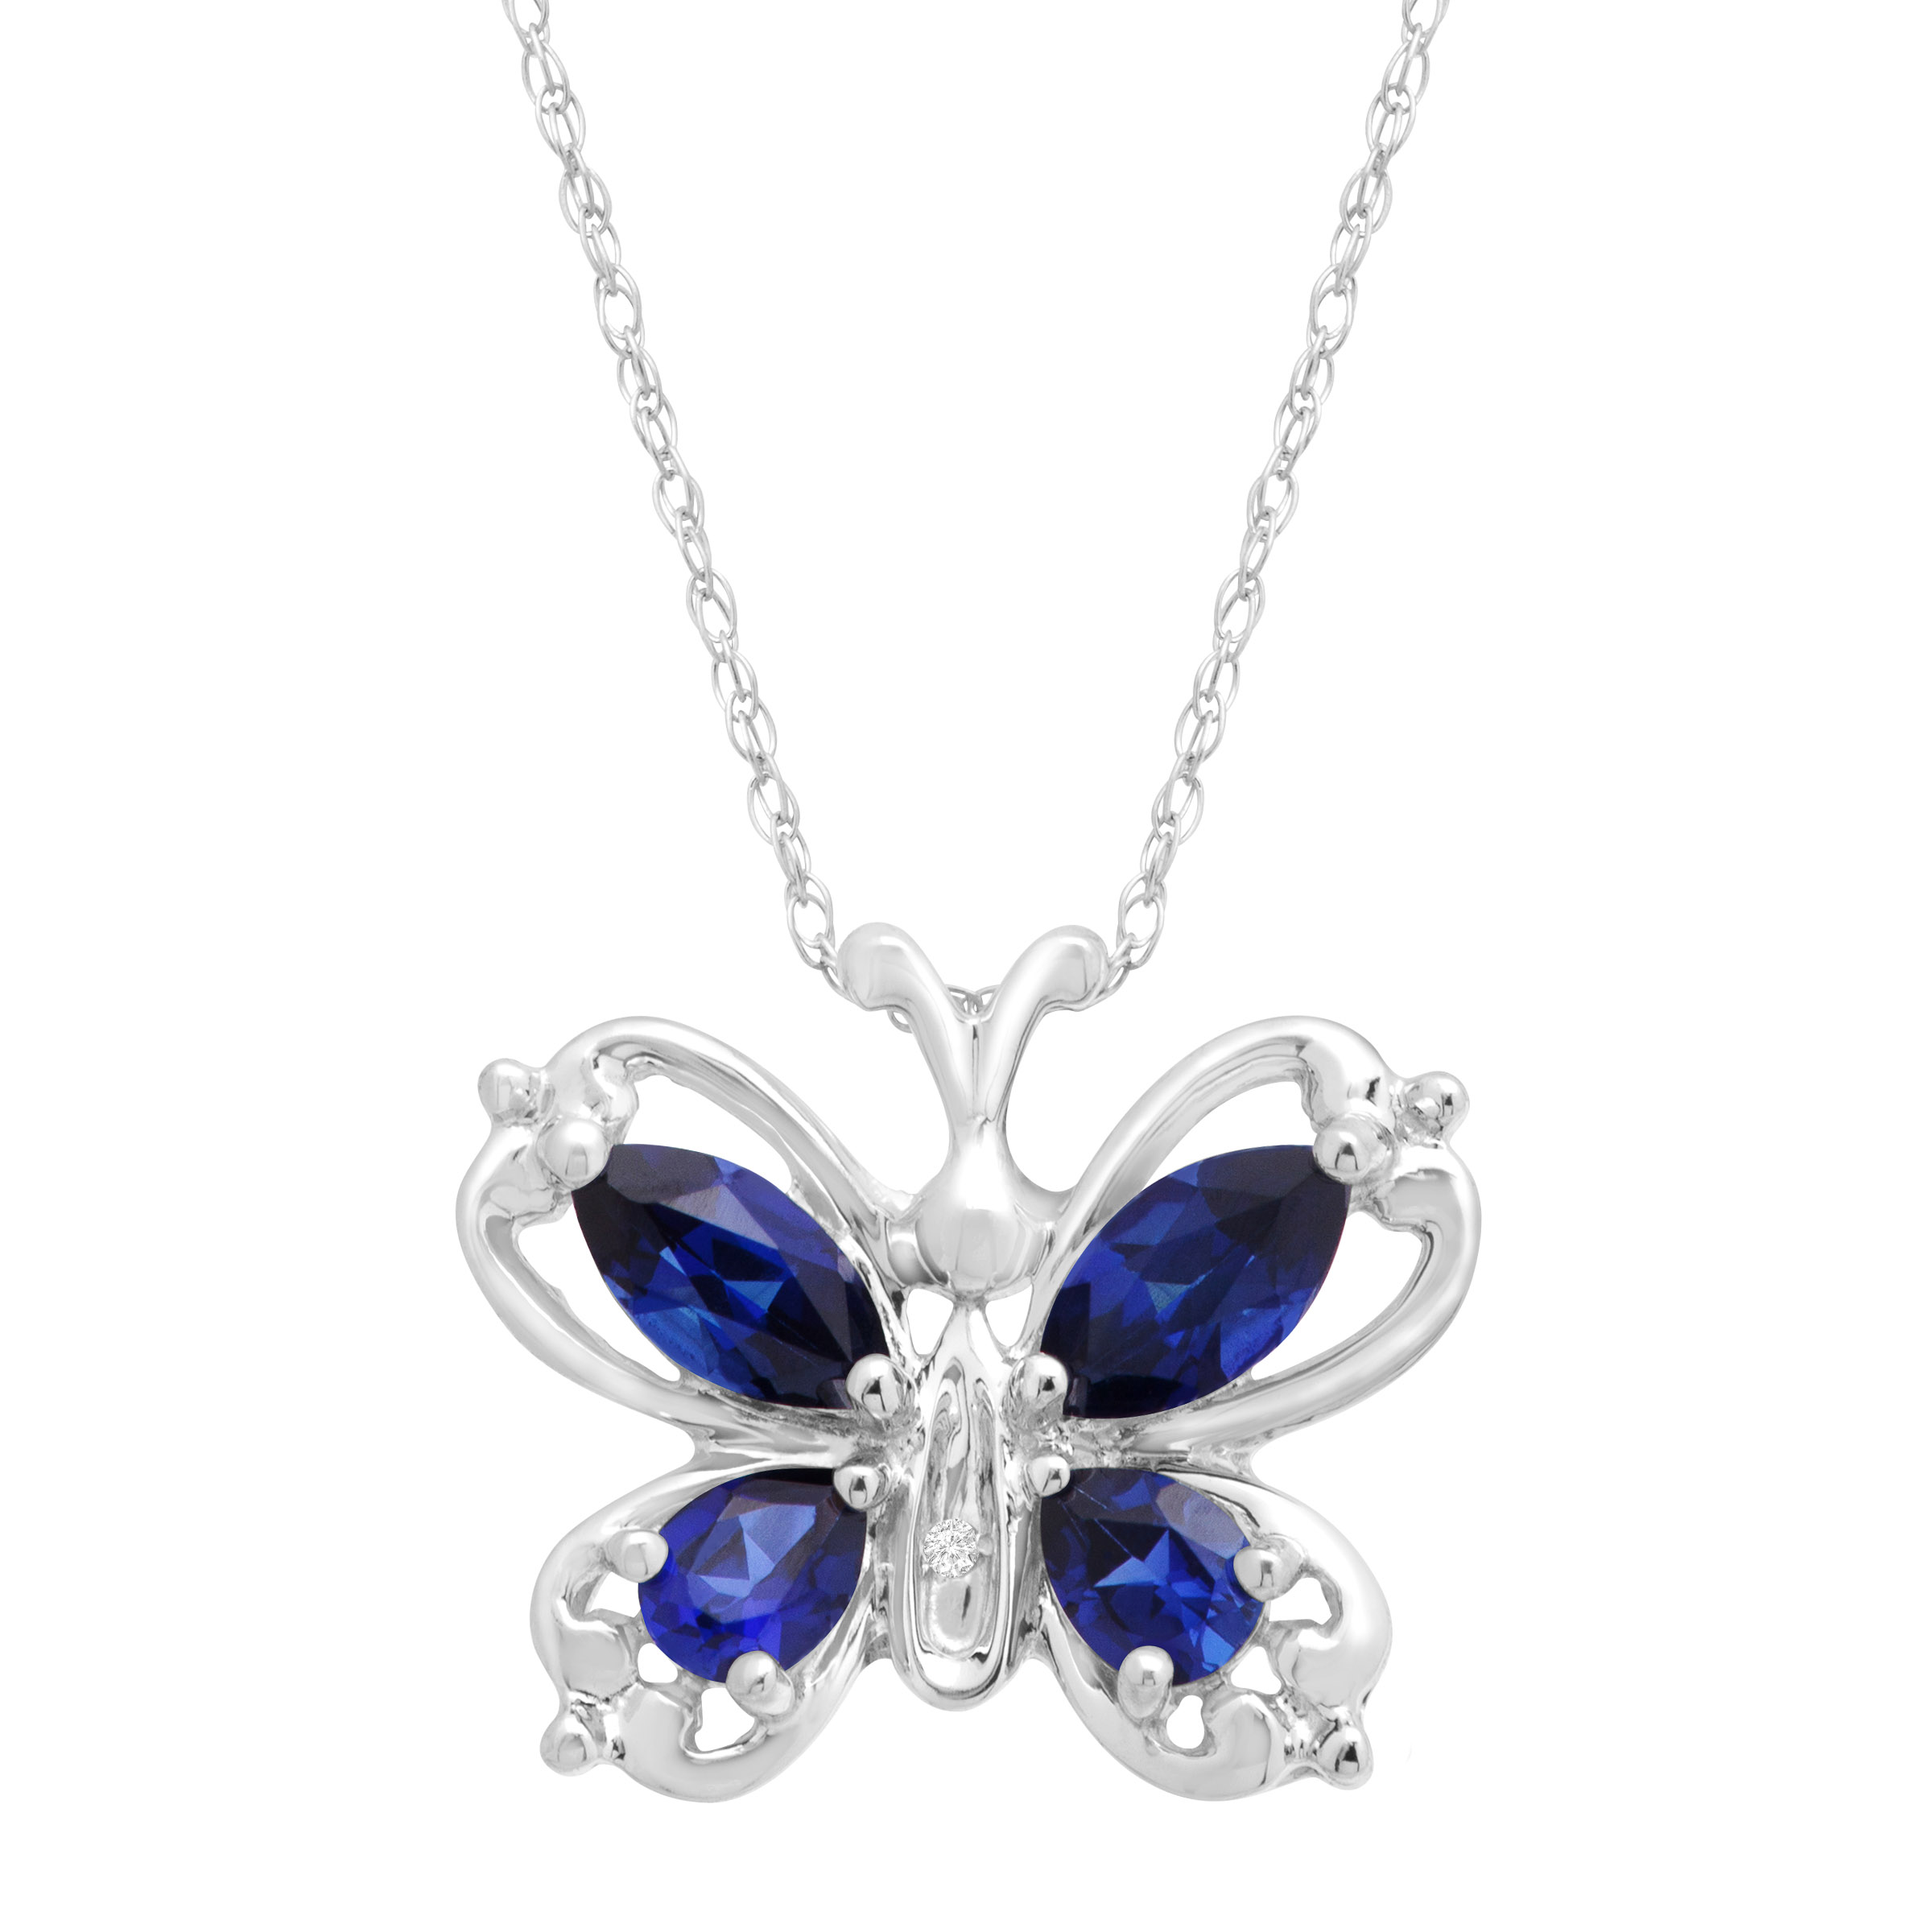 1 ct Created Sapphire Butterfly Pendant Necklace with Diamond in 10kt White Gold by Richline Group